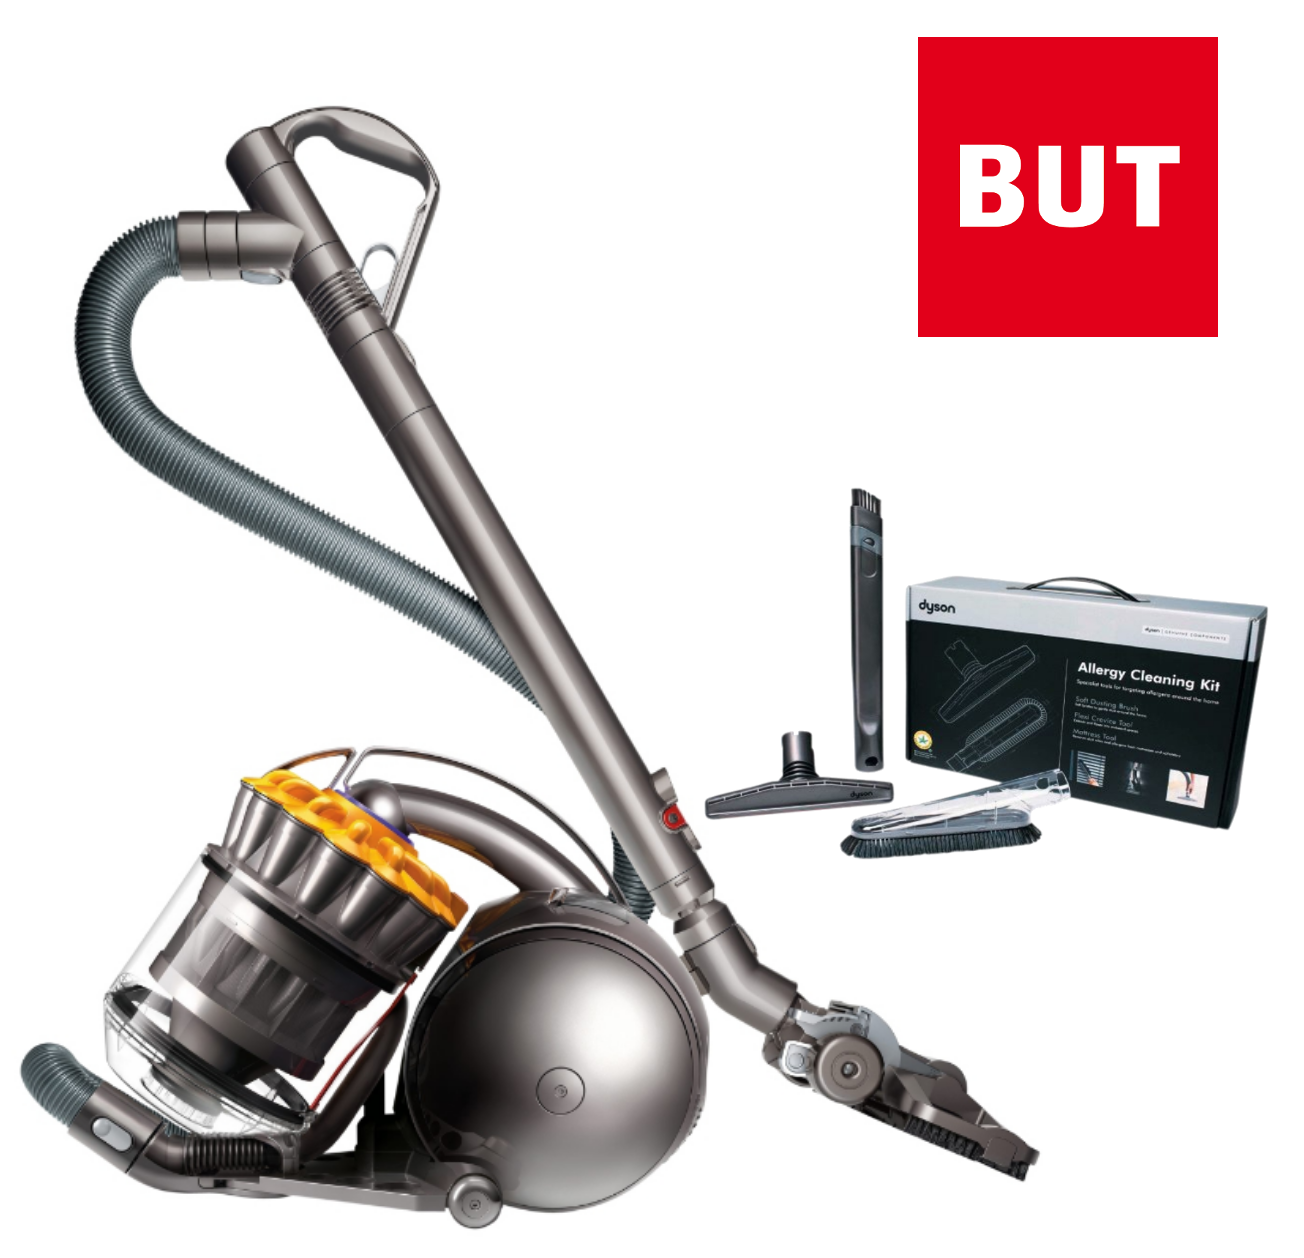 aspirateur dyson promotion aspirateur sans sac dyson ball. Black Bedroom Furniture Sets. Home Design Ideas